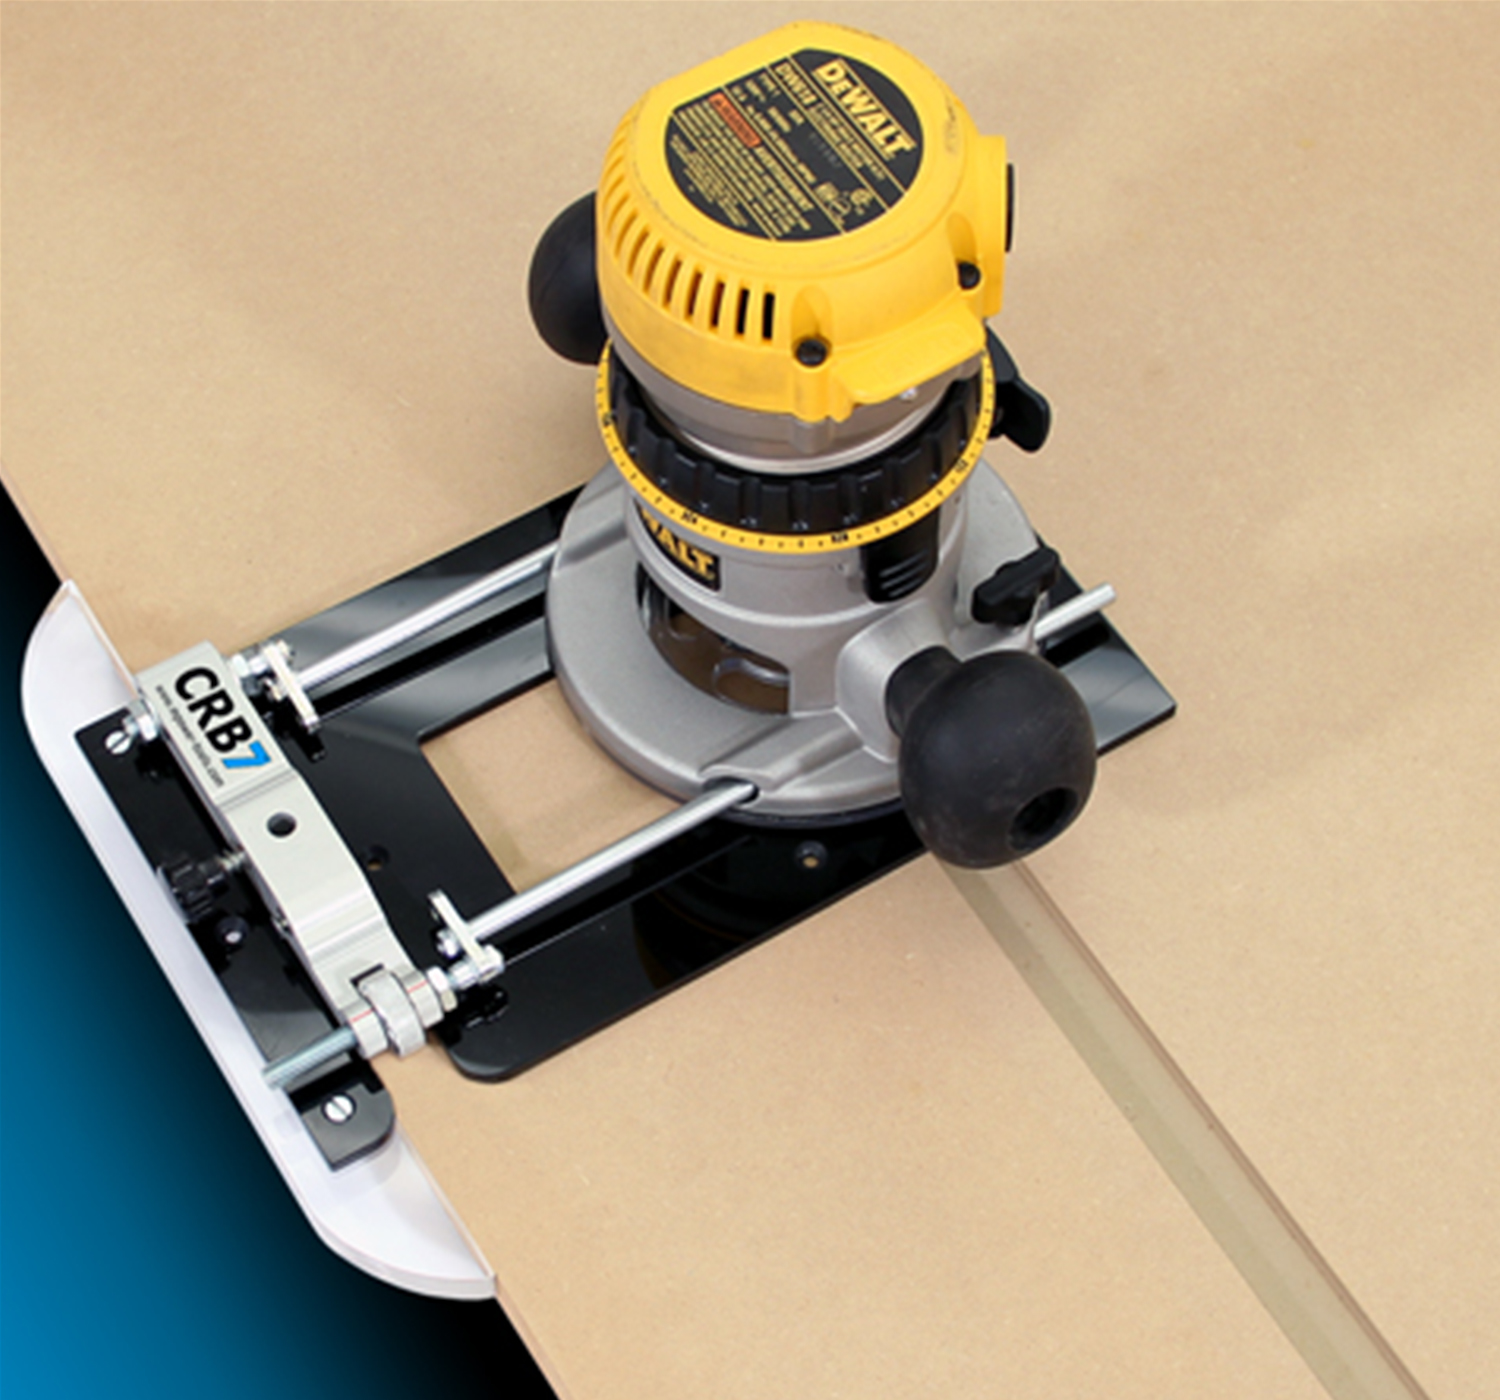 wood-working-tool-clamped-to-router-cutting-channels-into-timber-board